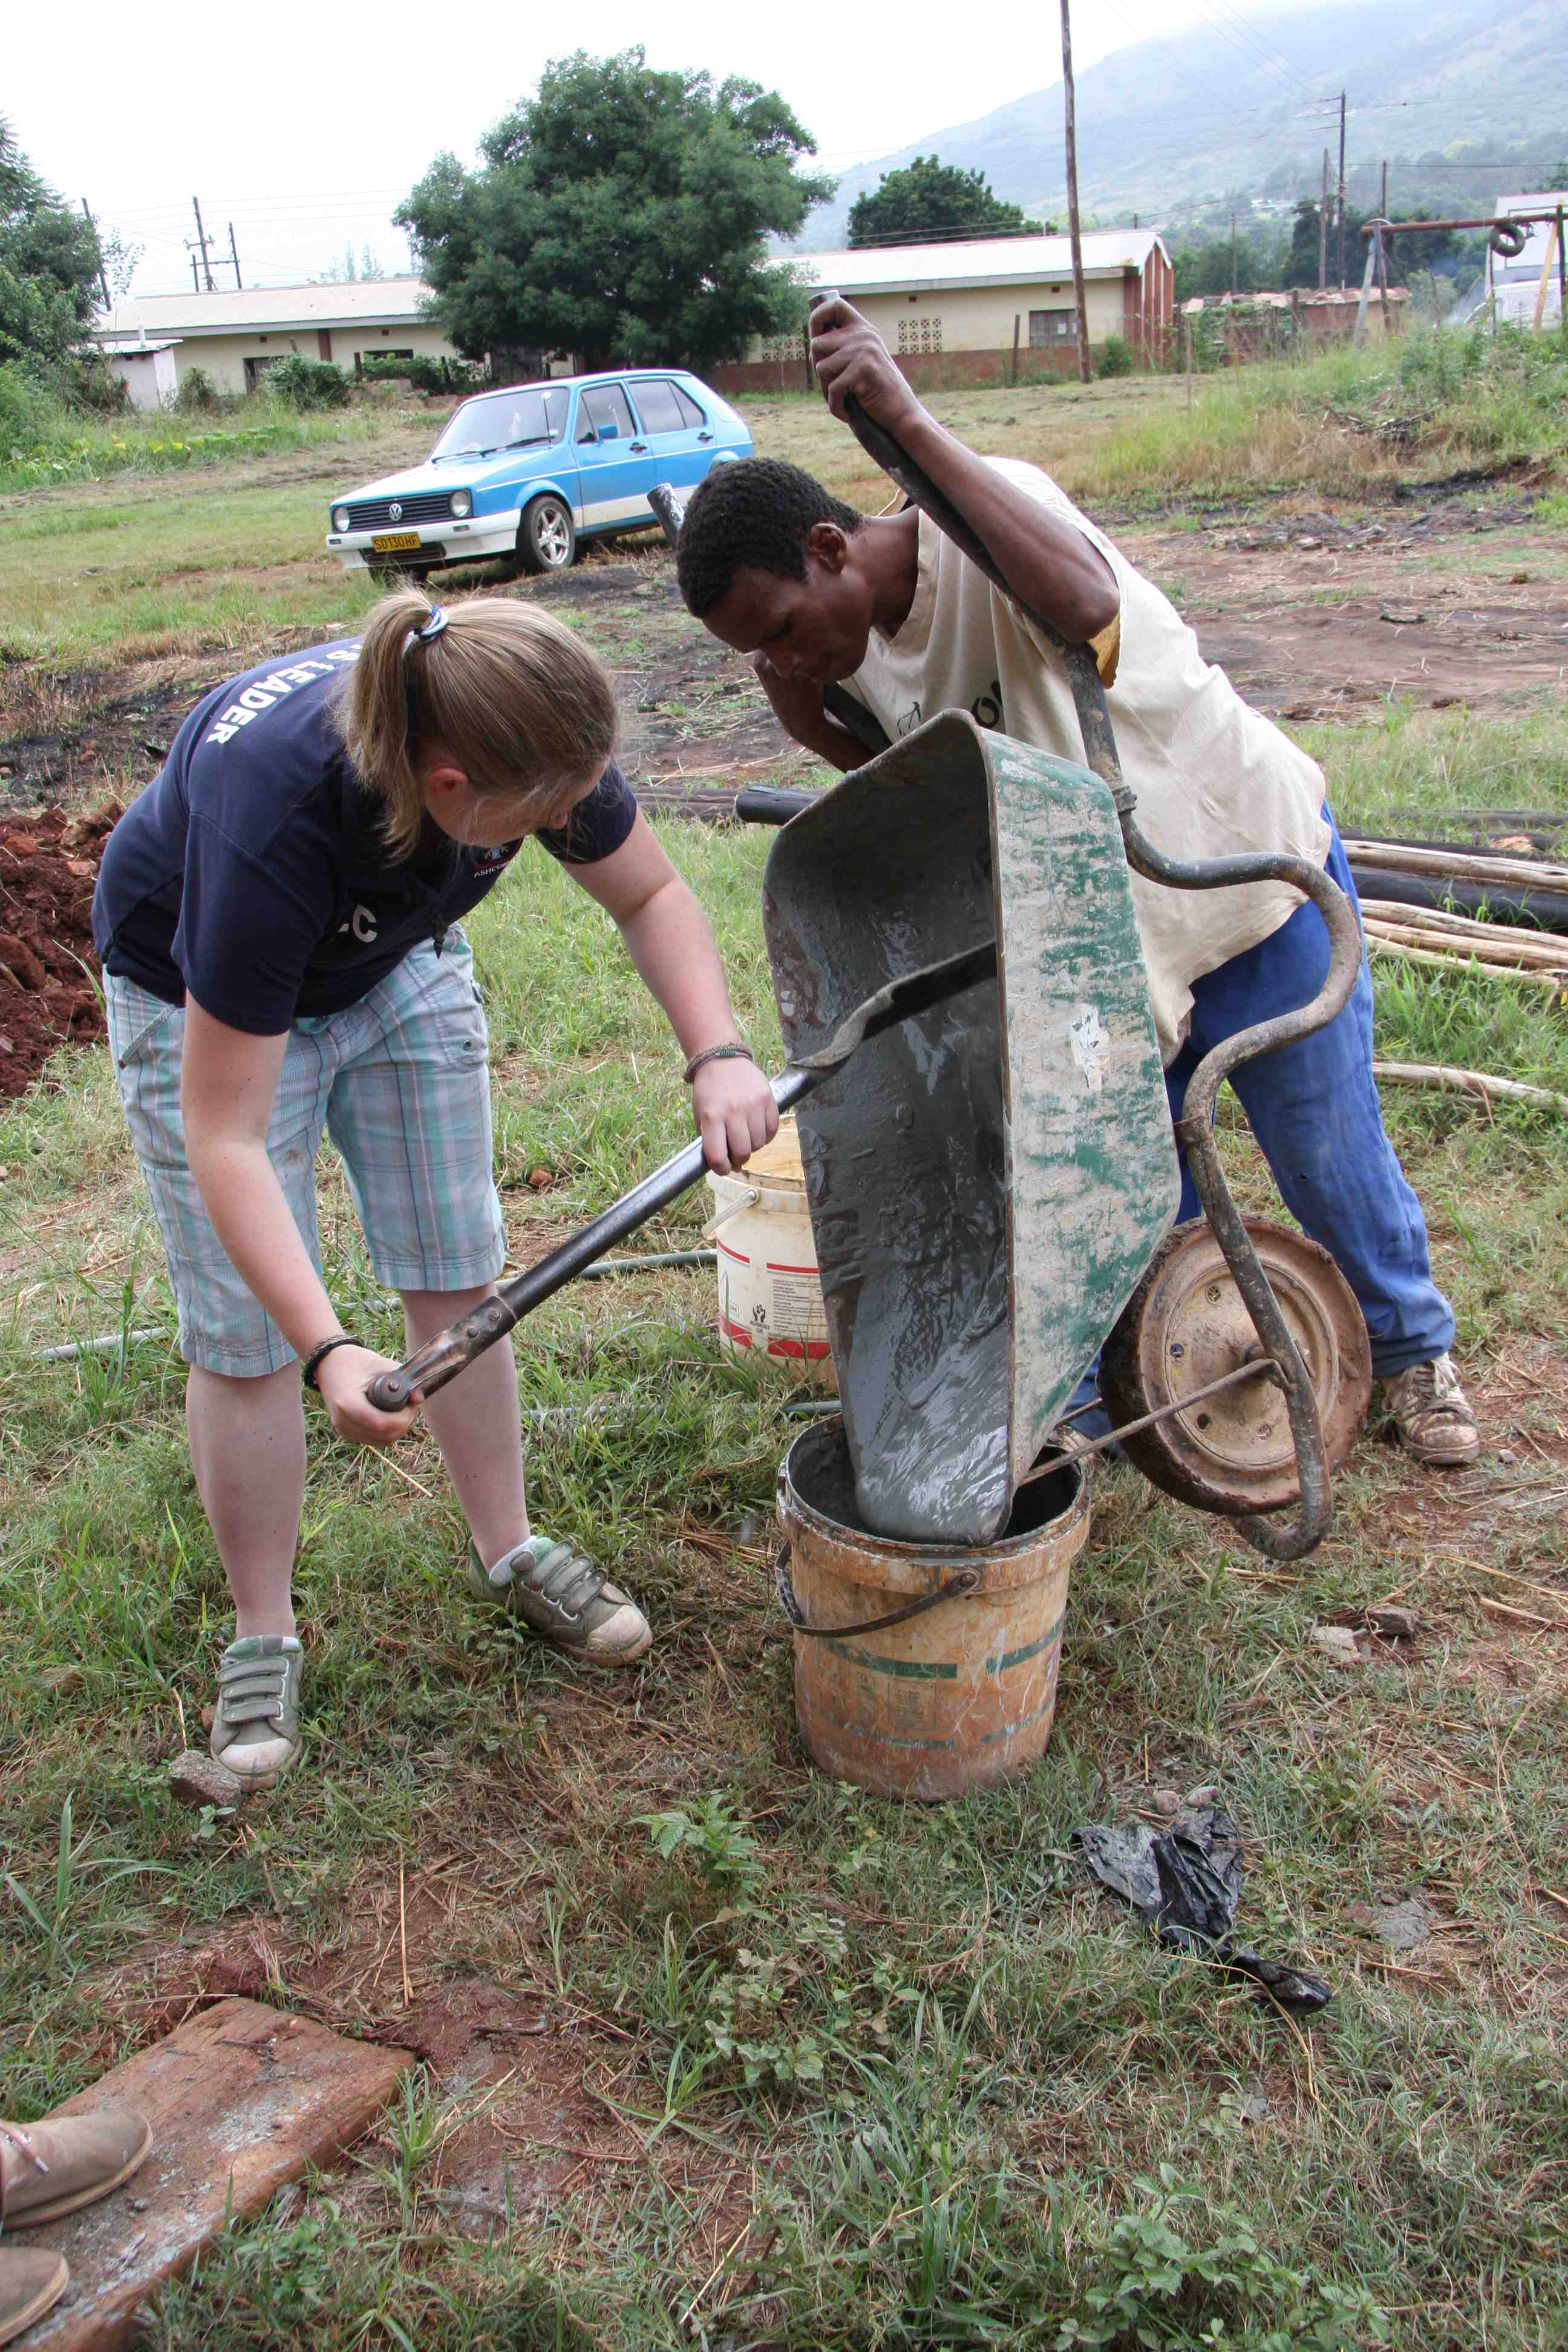 Learn how to build shelters with Kaya Responsible Travel in Swaziland